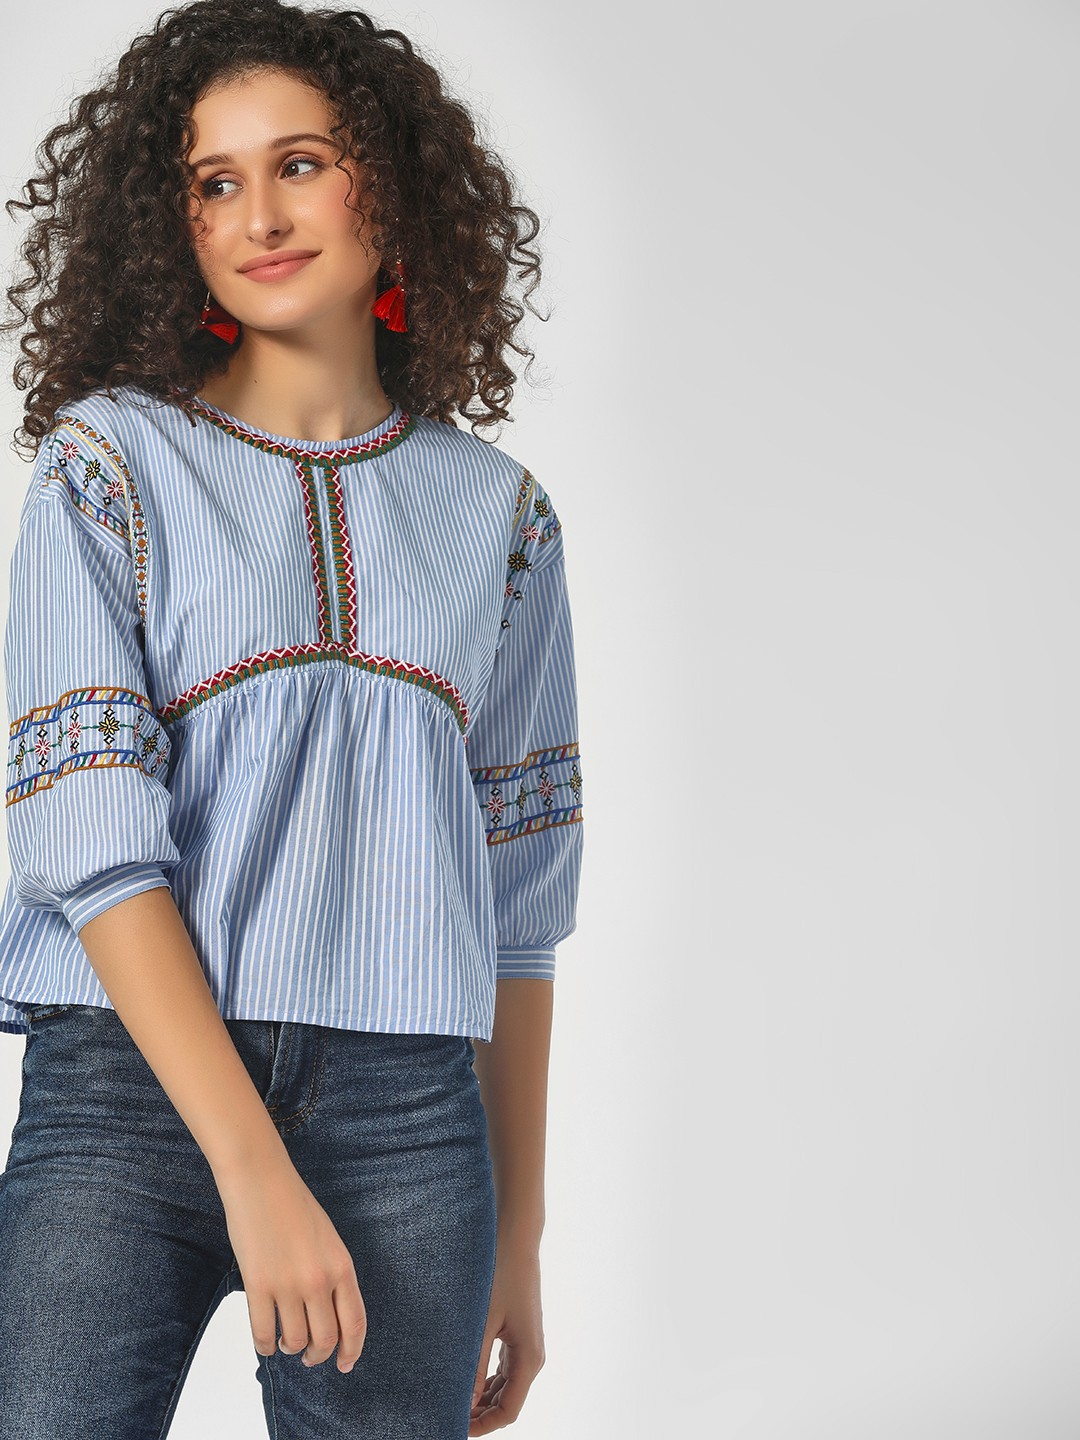 Sbuys Multi Striped Blouse With Embroidery 1